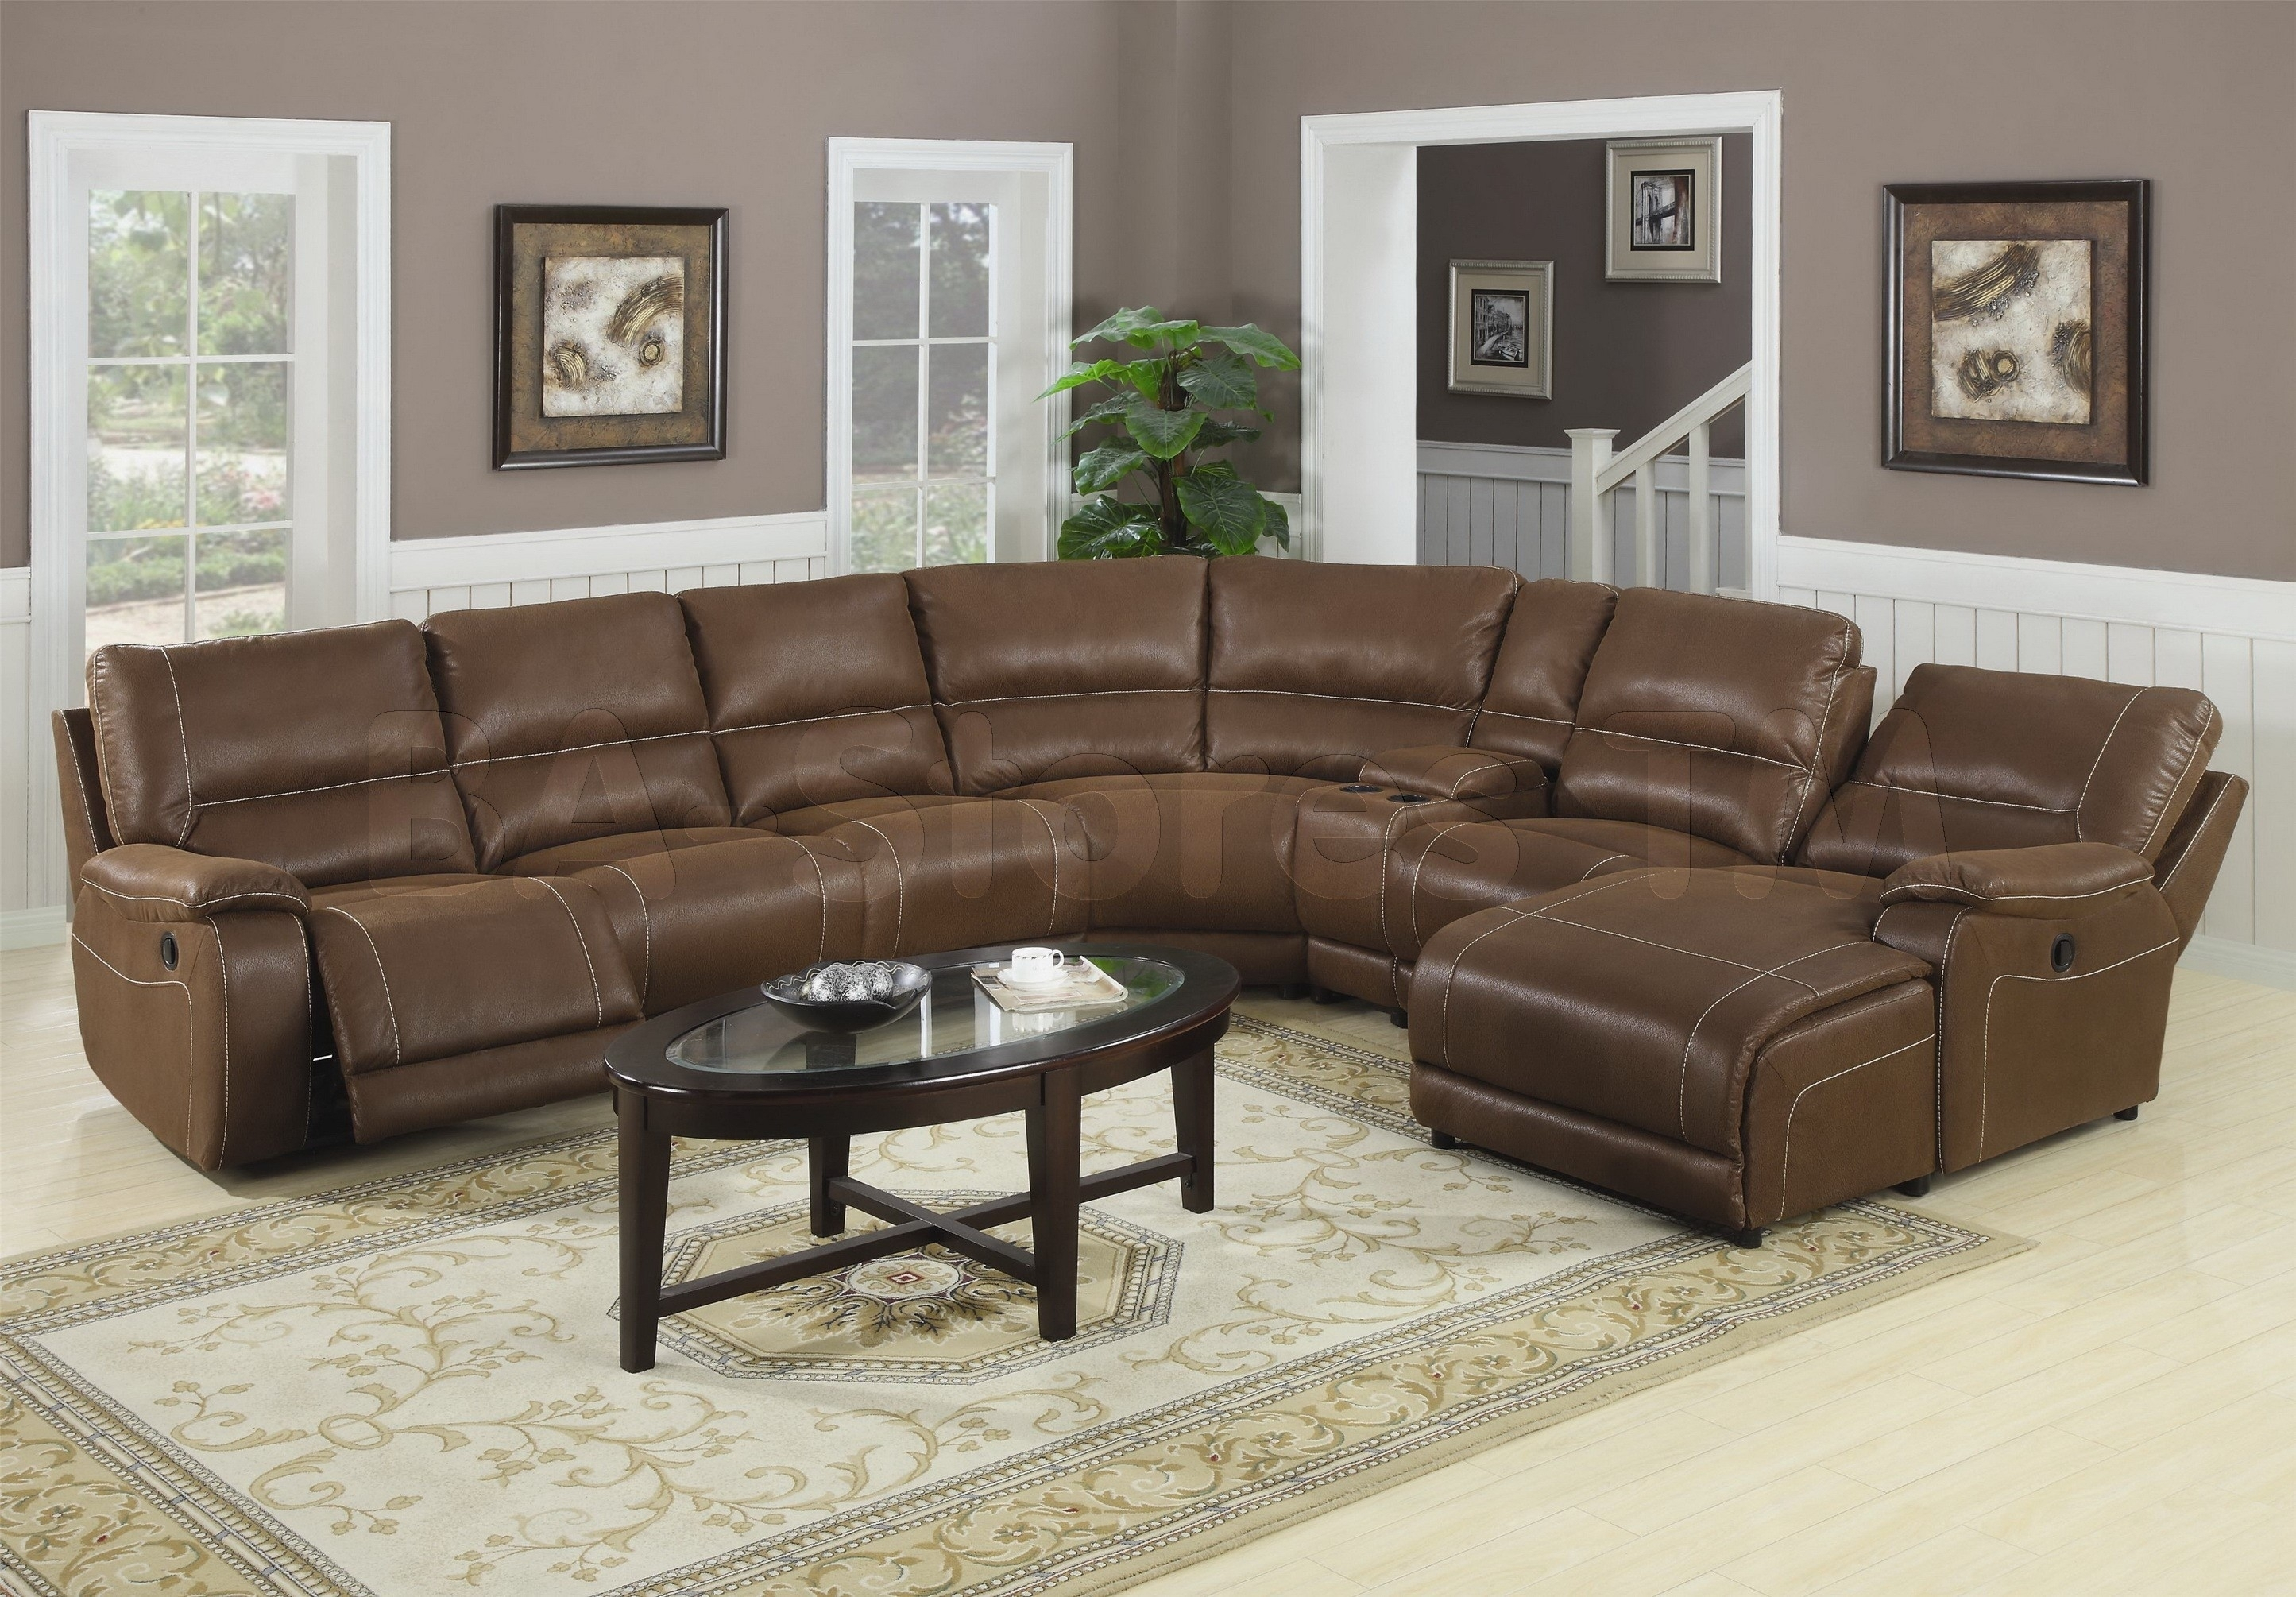 Unique Sectional Sofas Okc 21 With Additional Jonathan Louis Sleeper regarding Okc Sectional Sofas (Image 10 of 10)